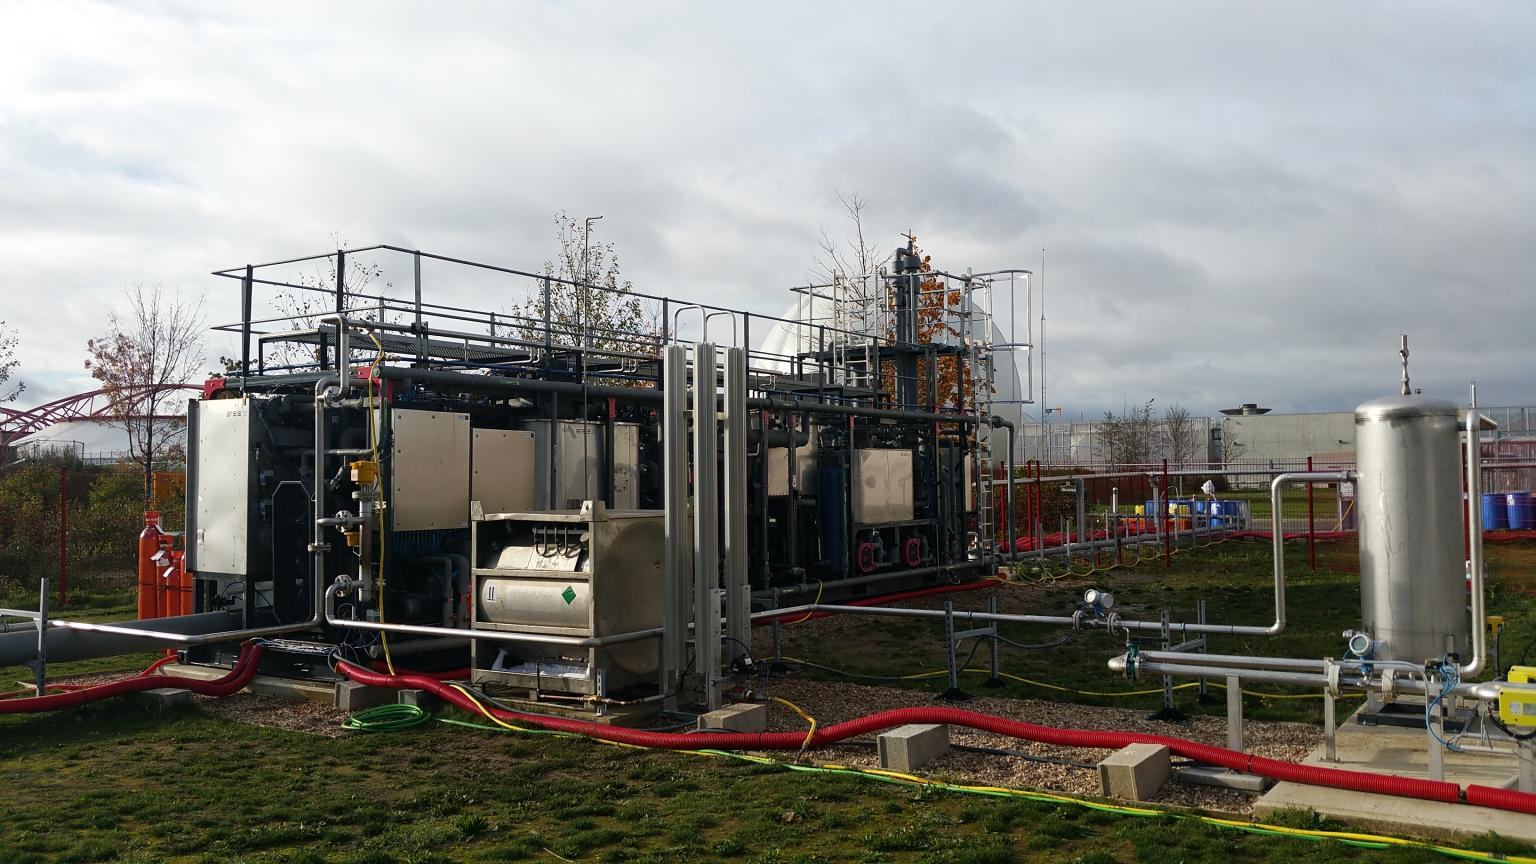 The demonstrator has successfully performed cryogenic CO2 capture, biomethane liquefaction, and nitrogen and oxygen separation